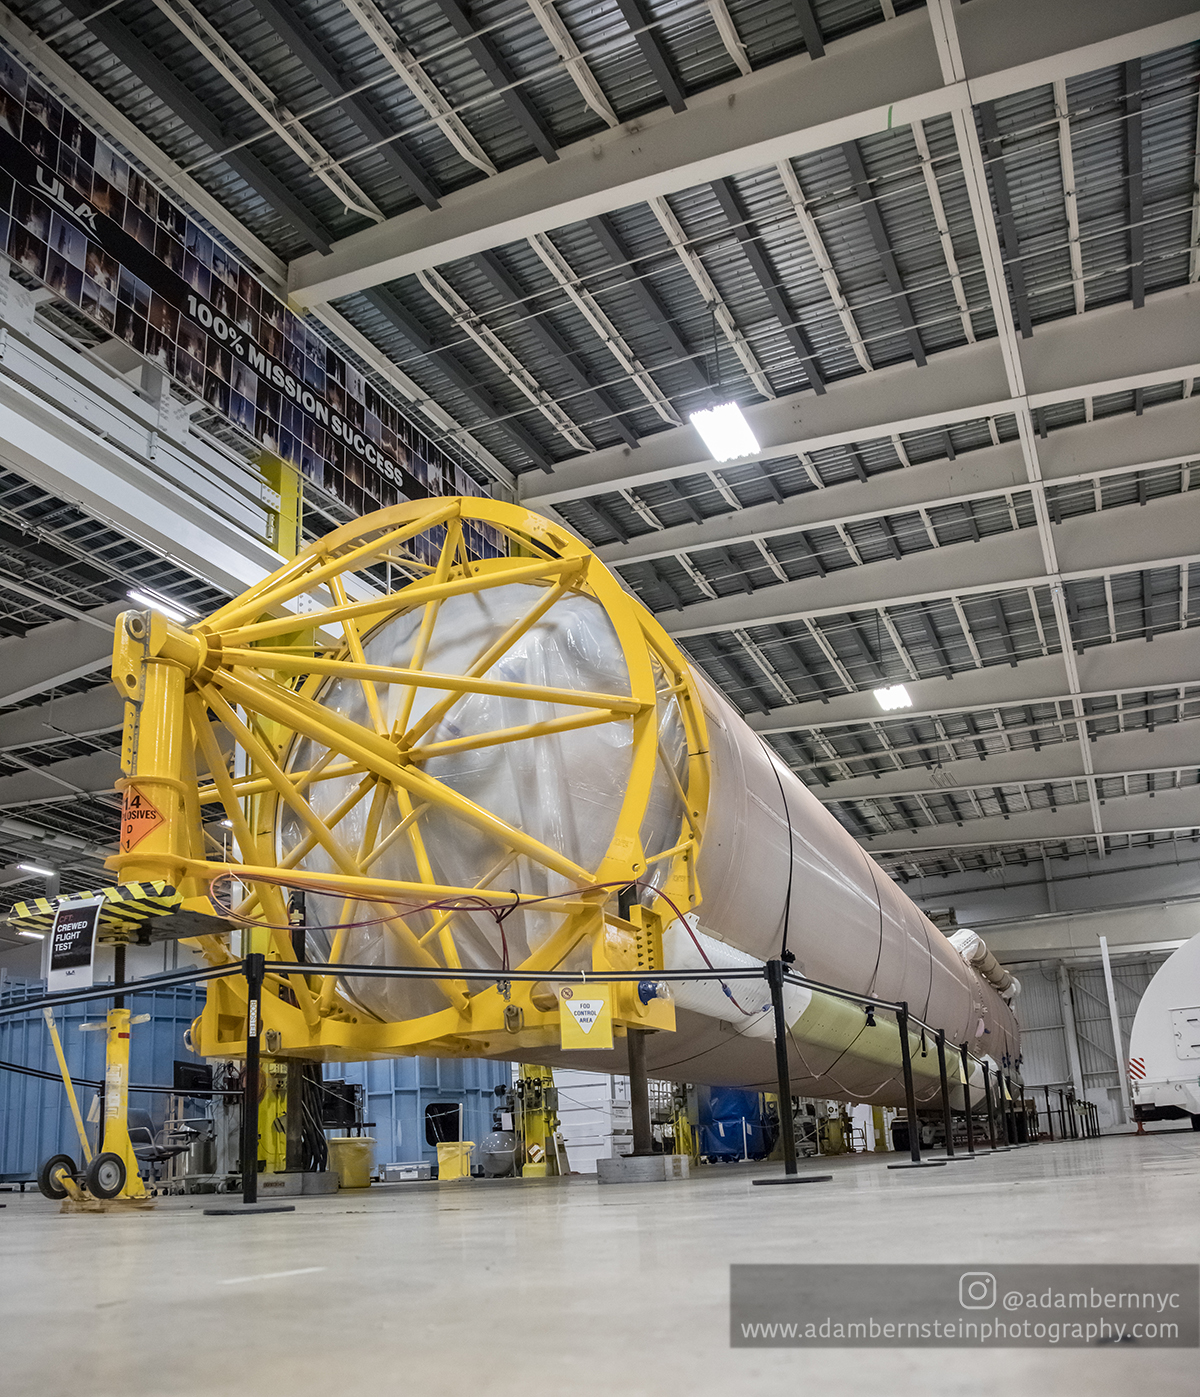 The United Launch Alliance Atlas V booster that will be used for Boeing's Crew Flight Test (CFT)